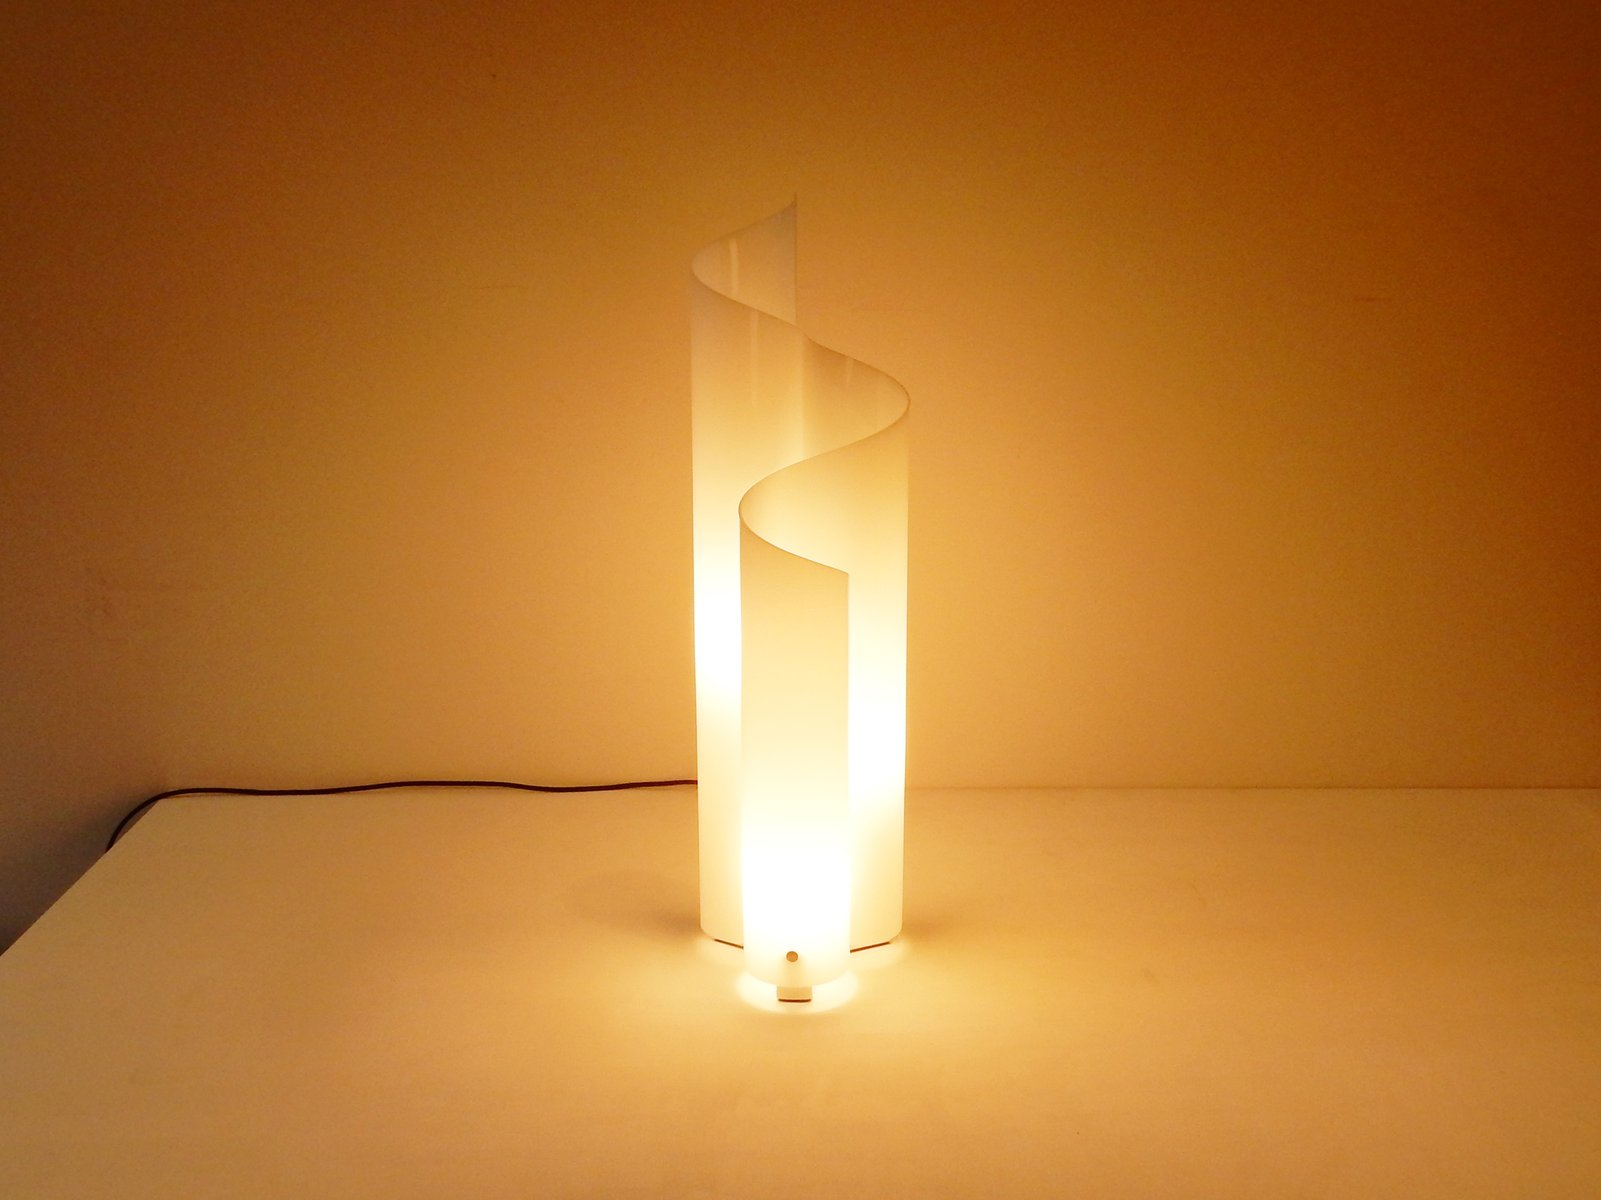 Mezzachimera Table Lamp By Vico Magistretti For Artemide